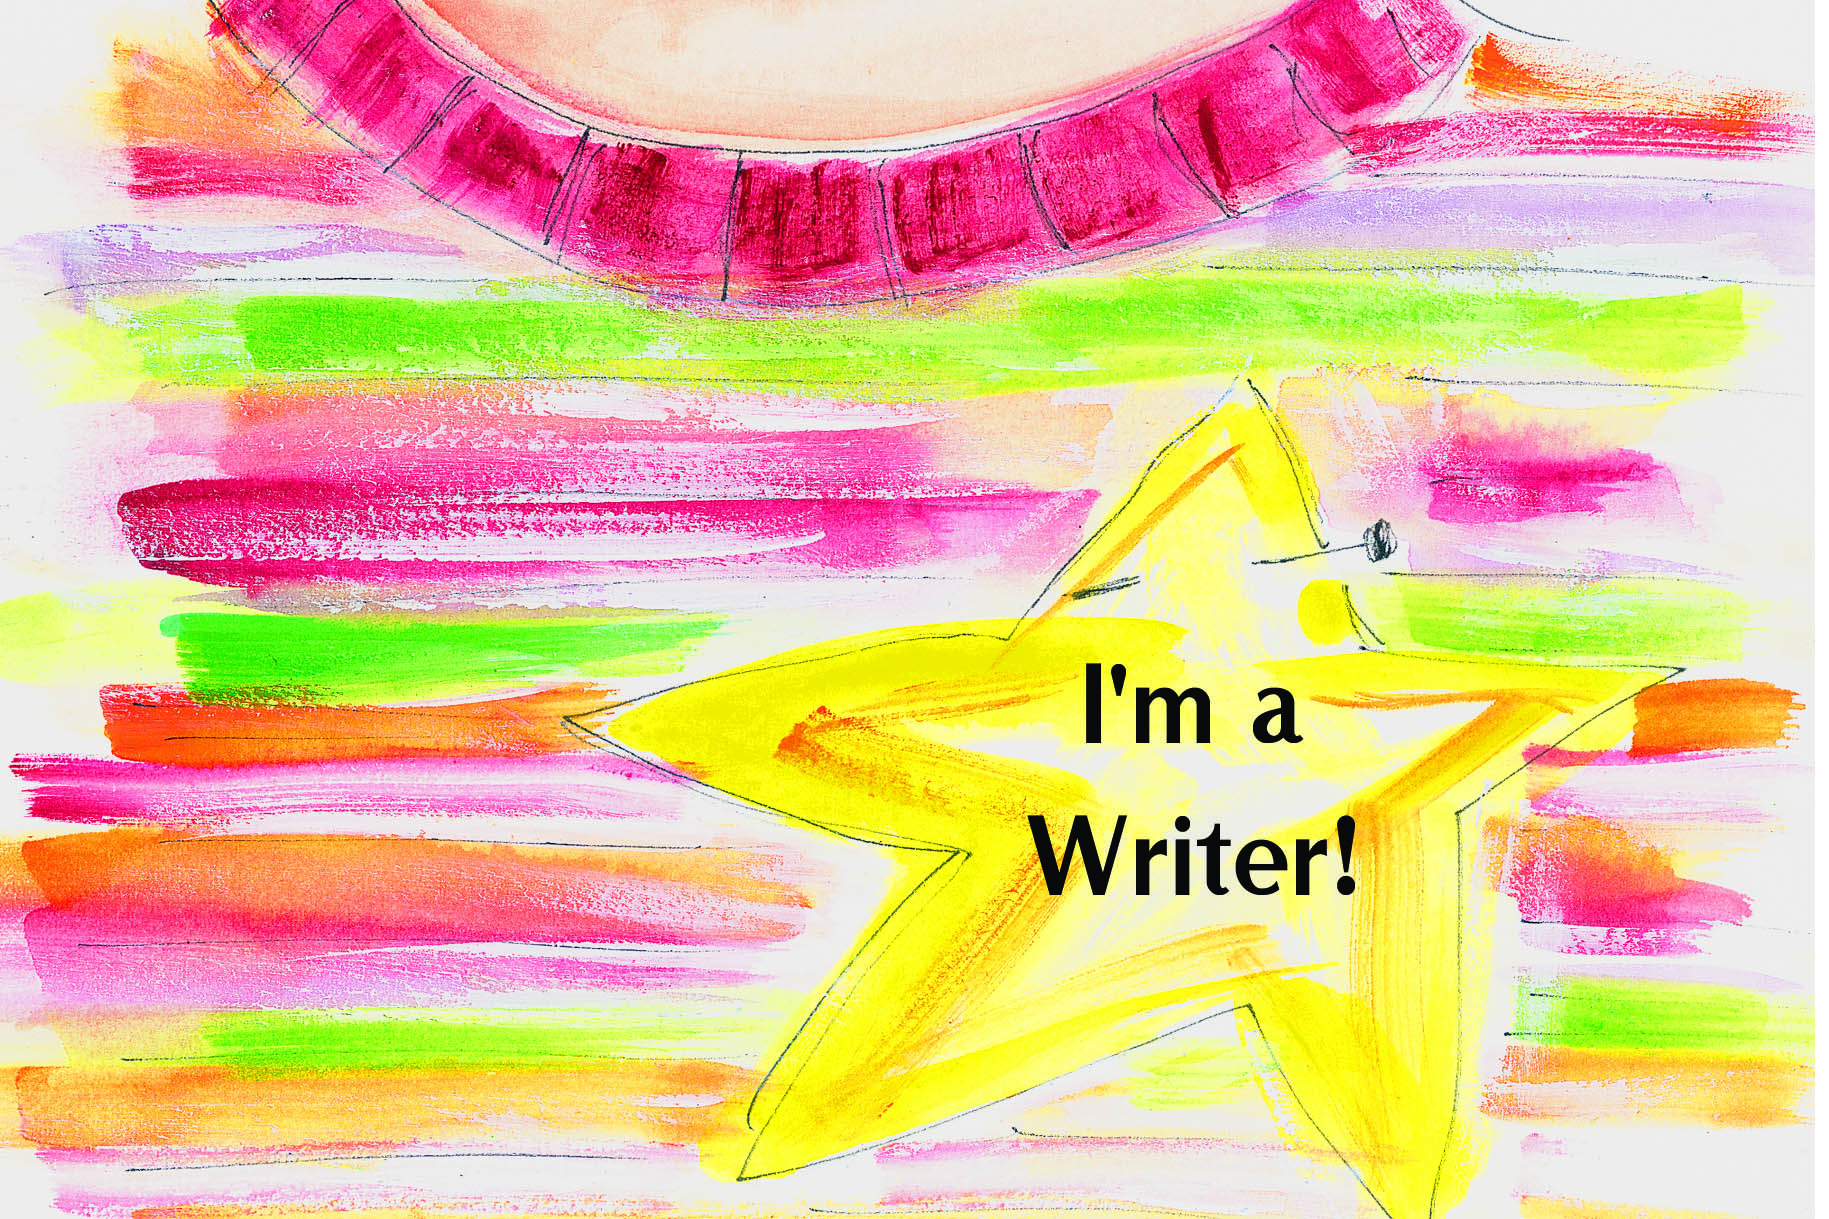 Introduce Yourself AS A WRITER